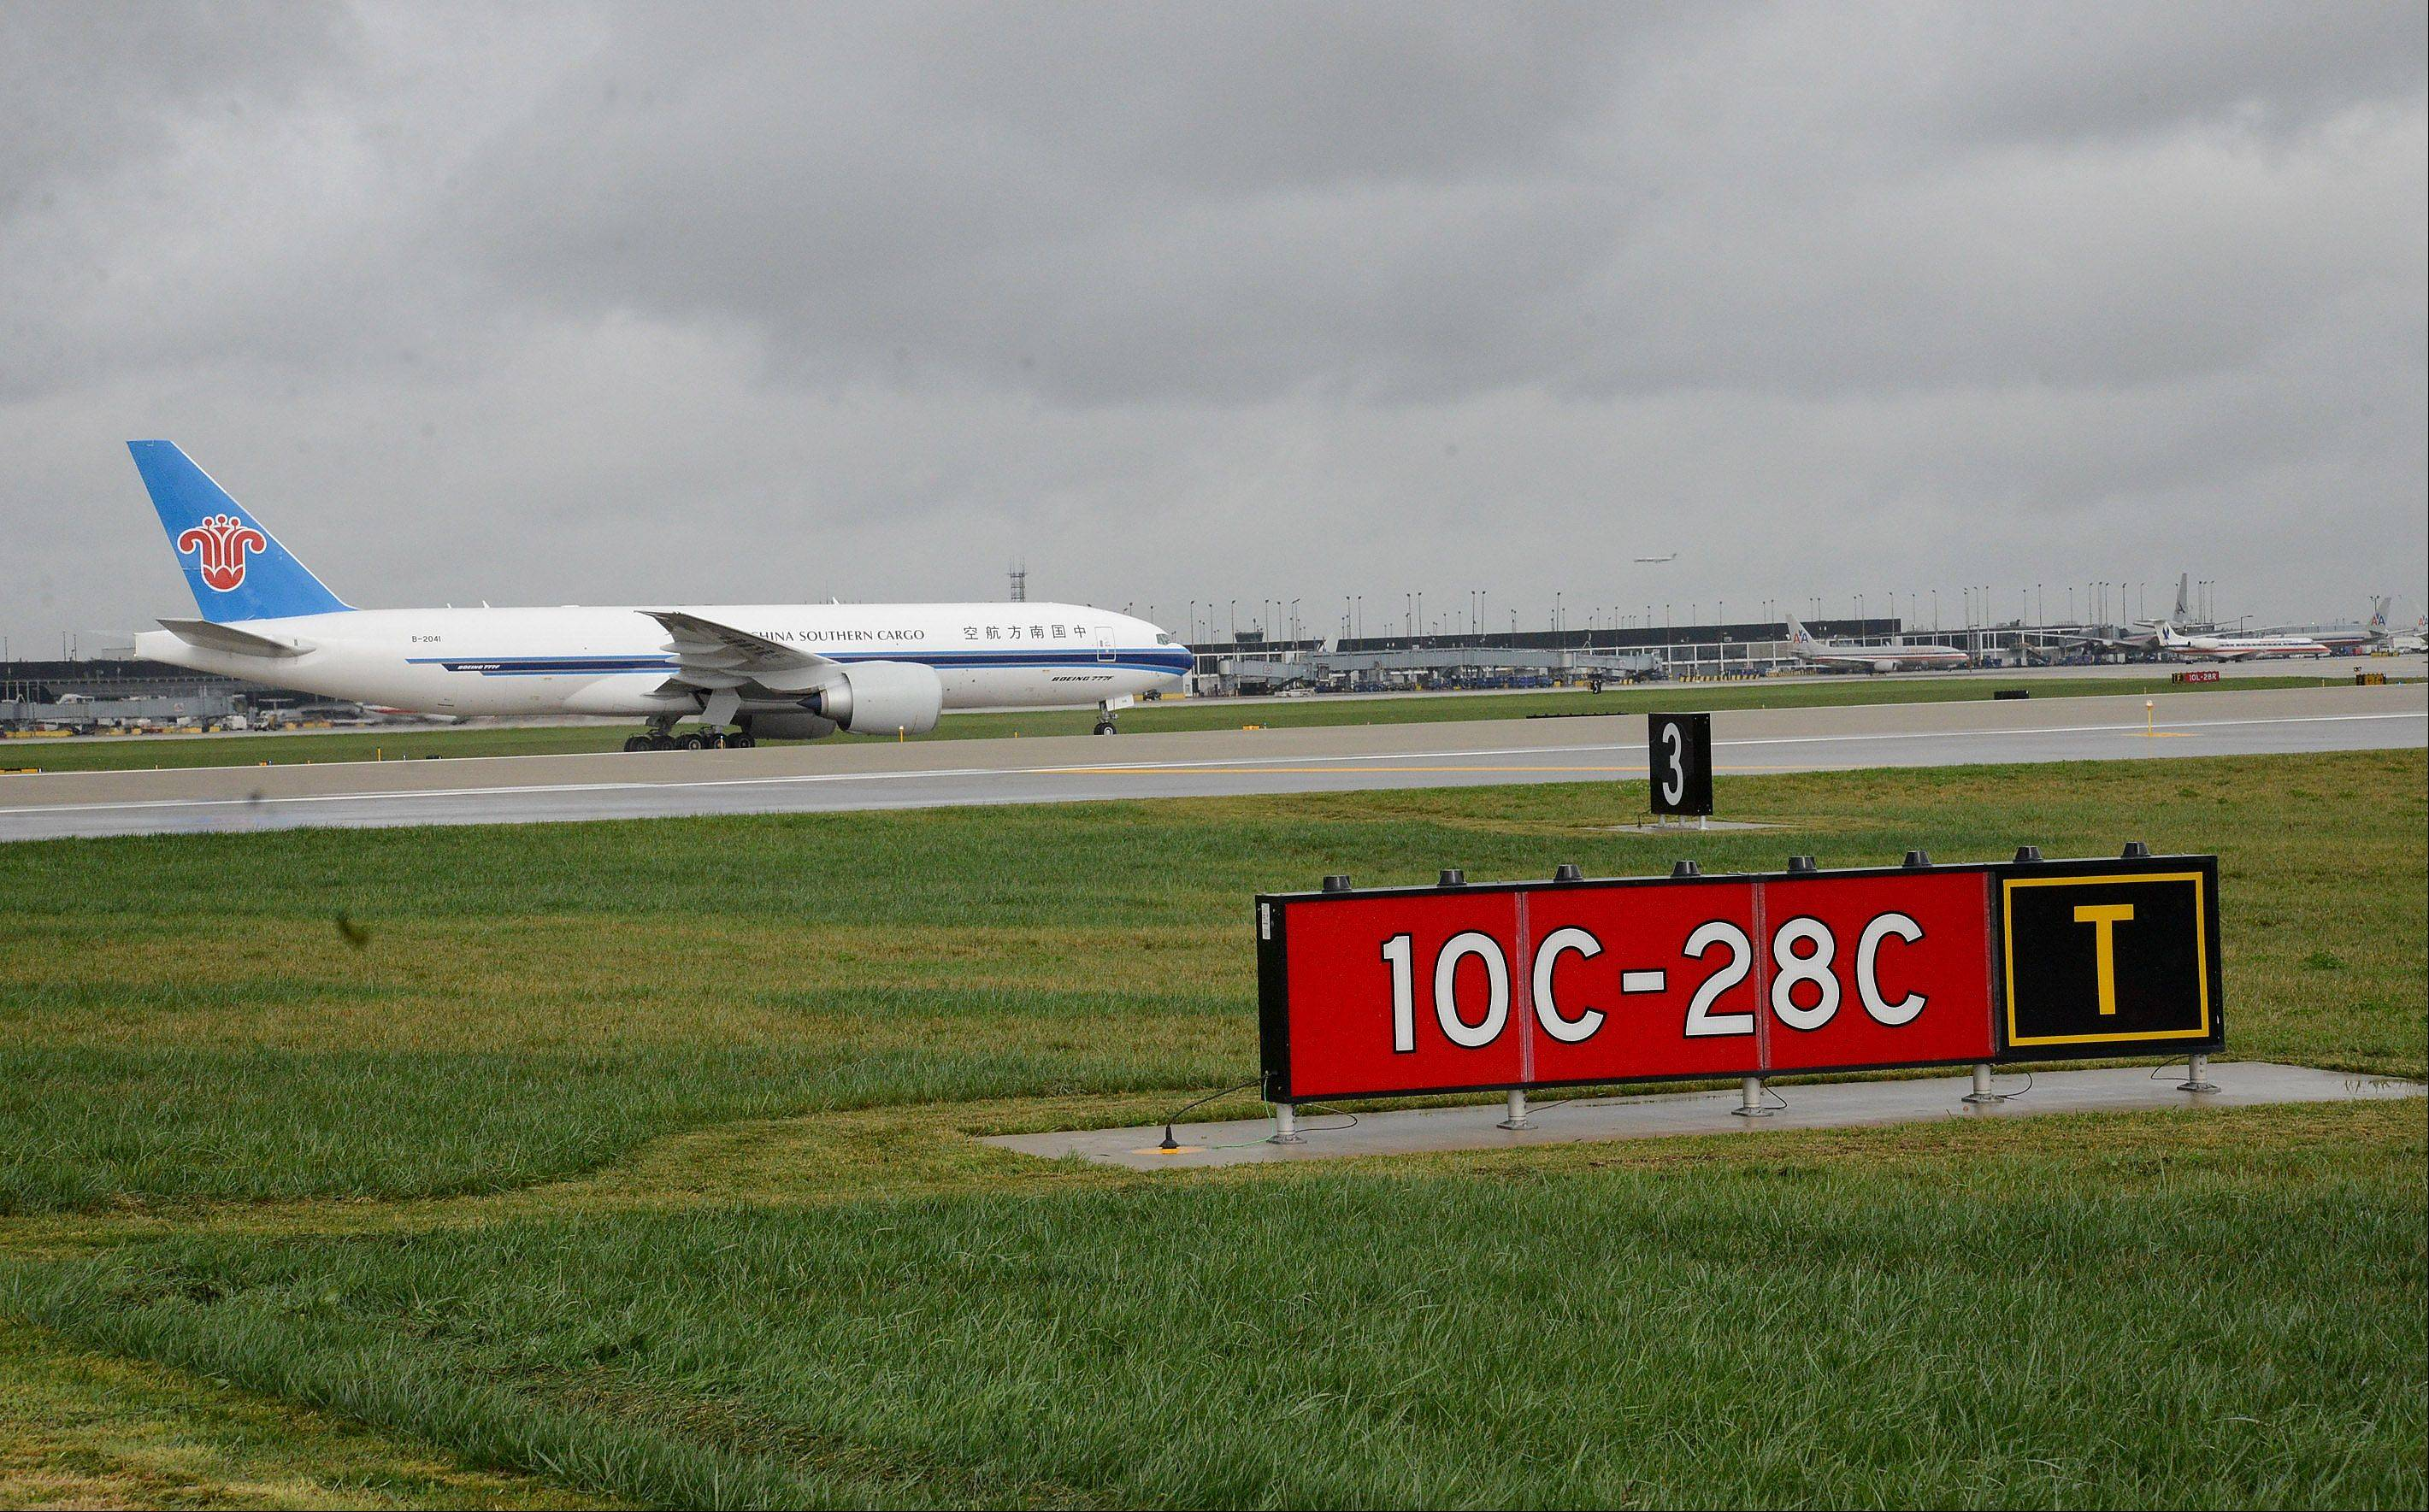 New runway 10C/28C at O'Hare International Airport could bring more noise to some nearby Northwest and West suburbs, while the level of noise in suburbs like Elk Grove Village and Itasca is a bit in question.